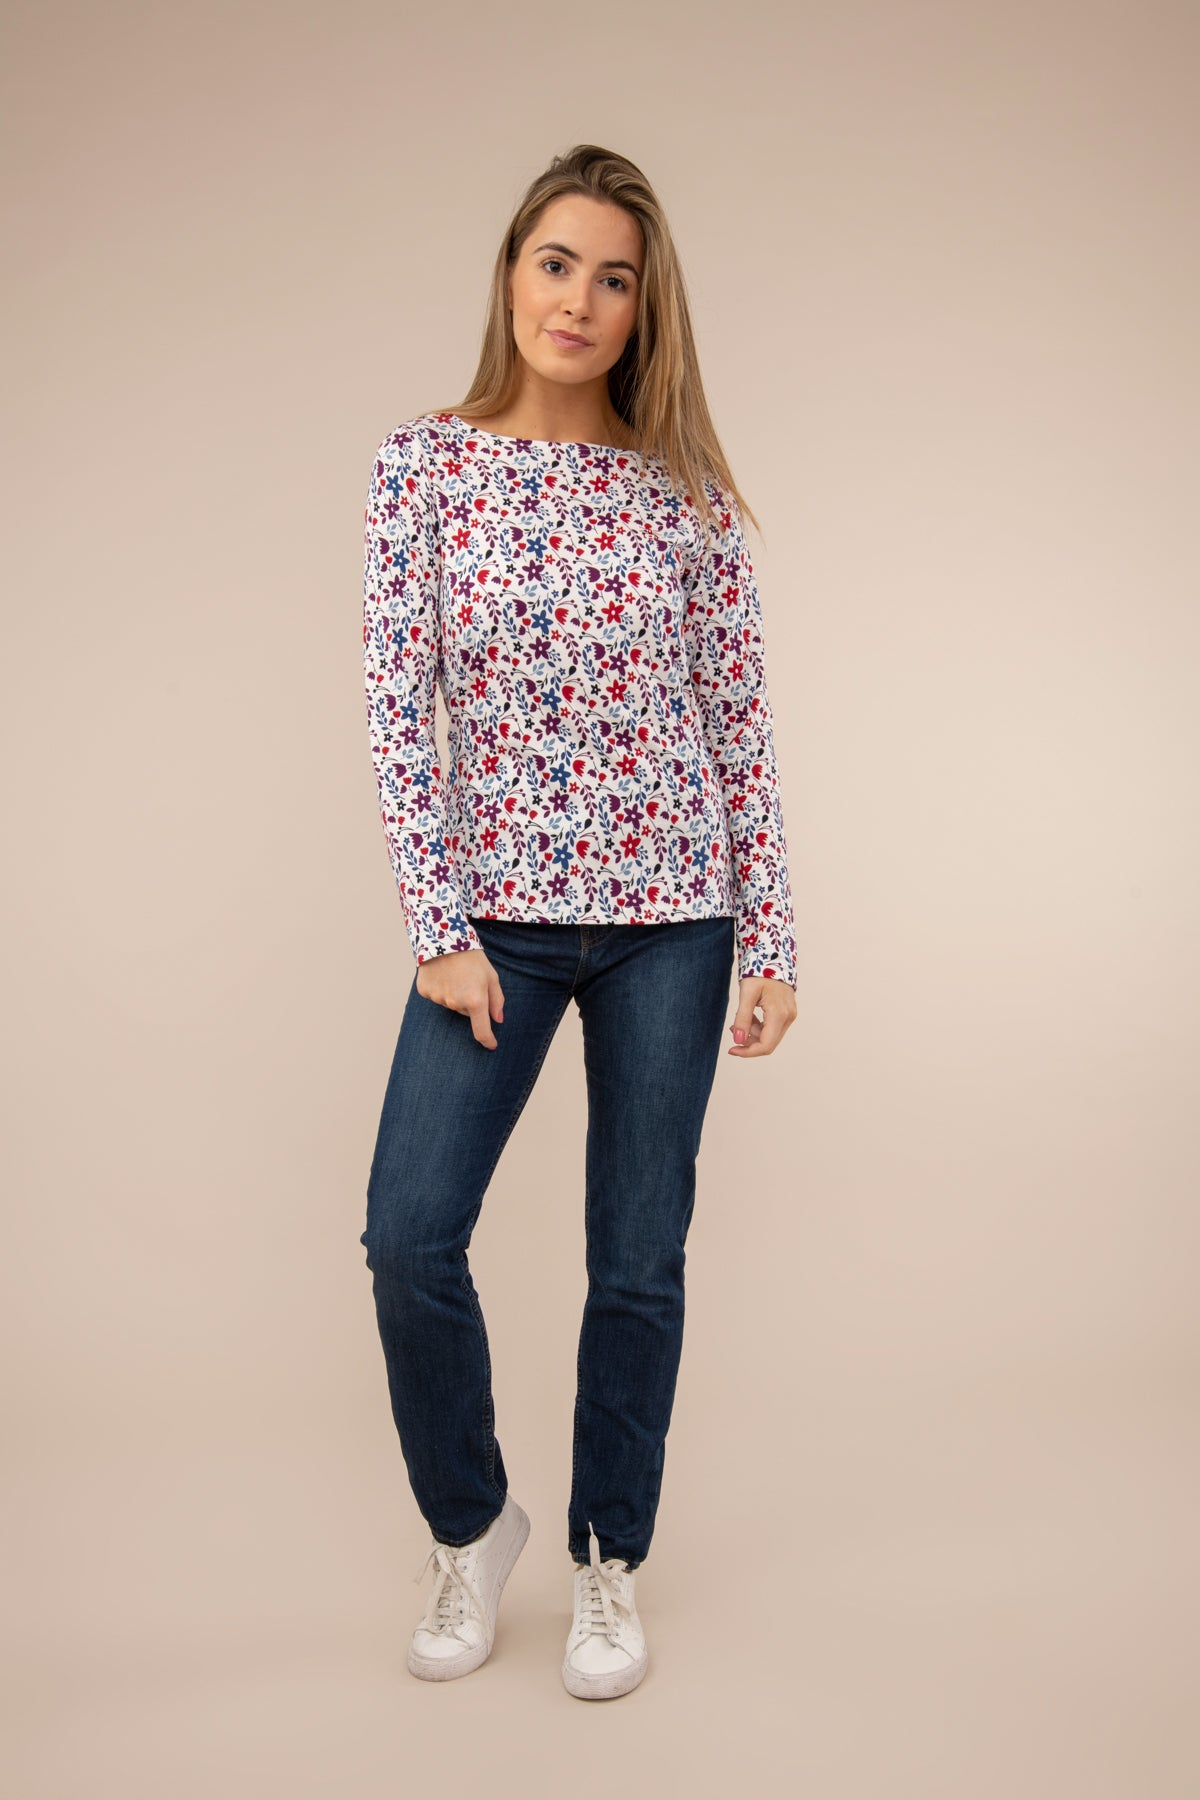 Lighthouse Causeway  - Womens Long Sleeve Top - Floral Print